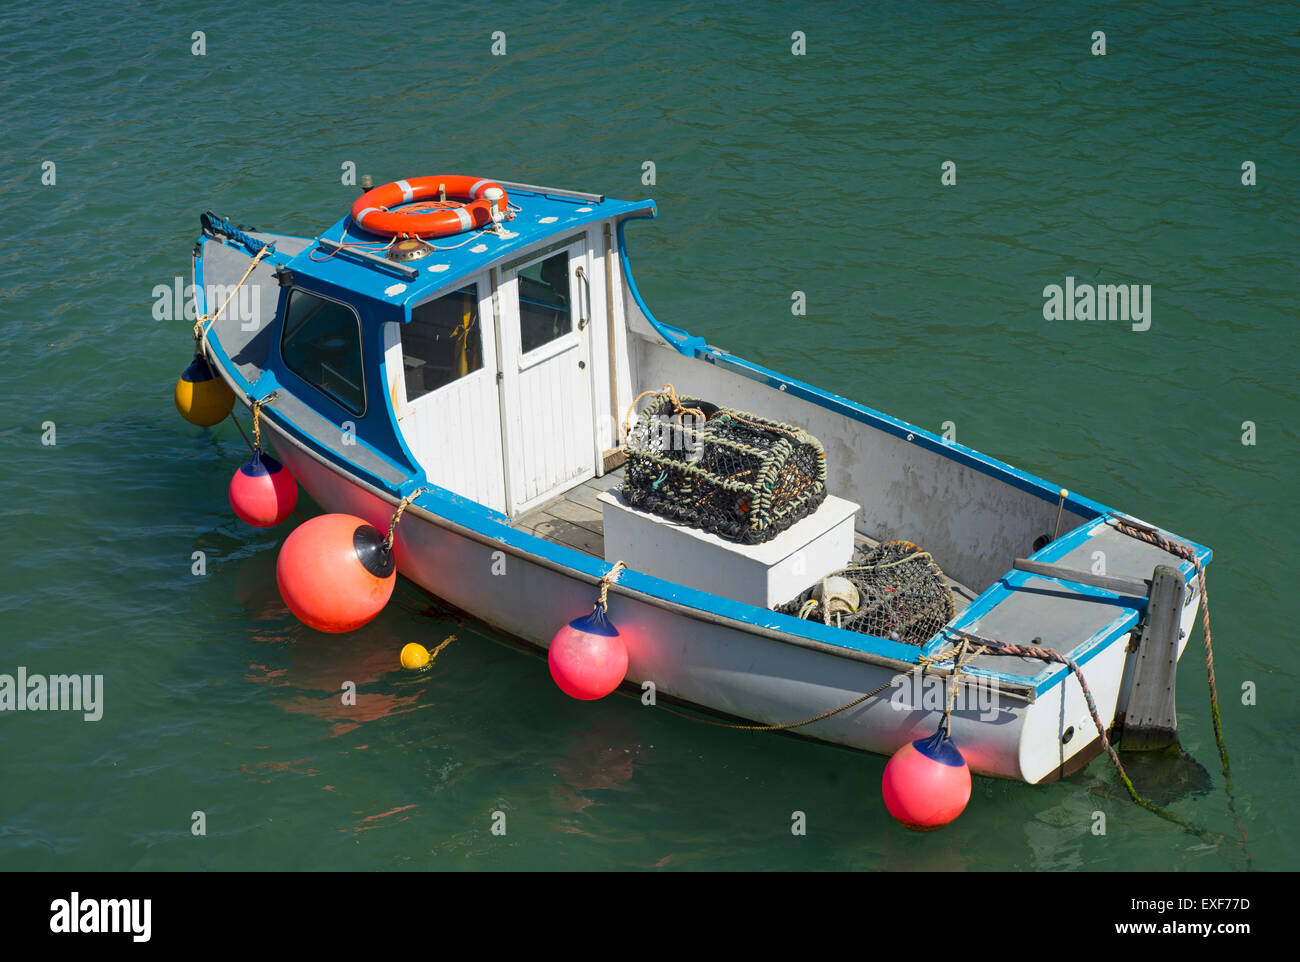 Fishing Creel Stock Photos & Fishing Creel Stock Images ...